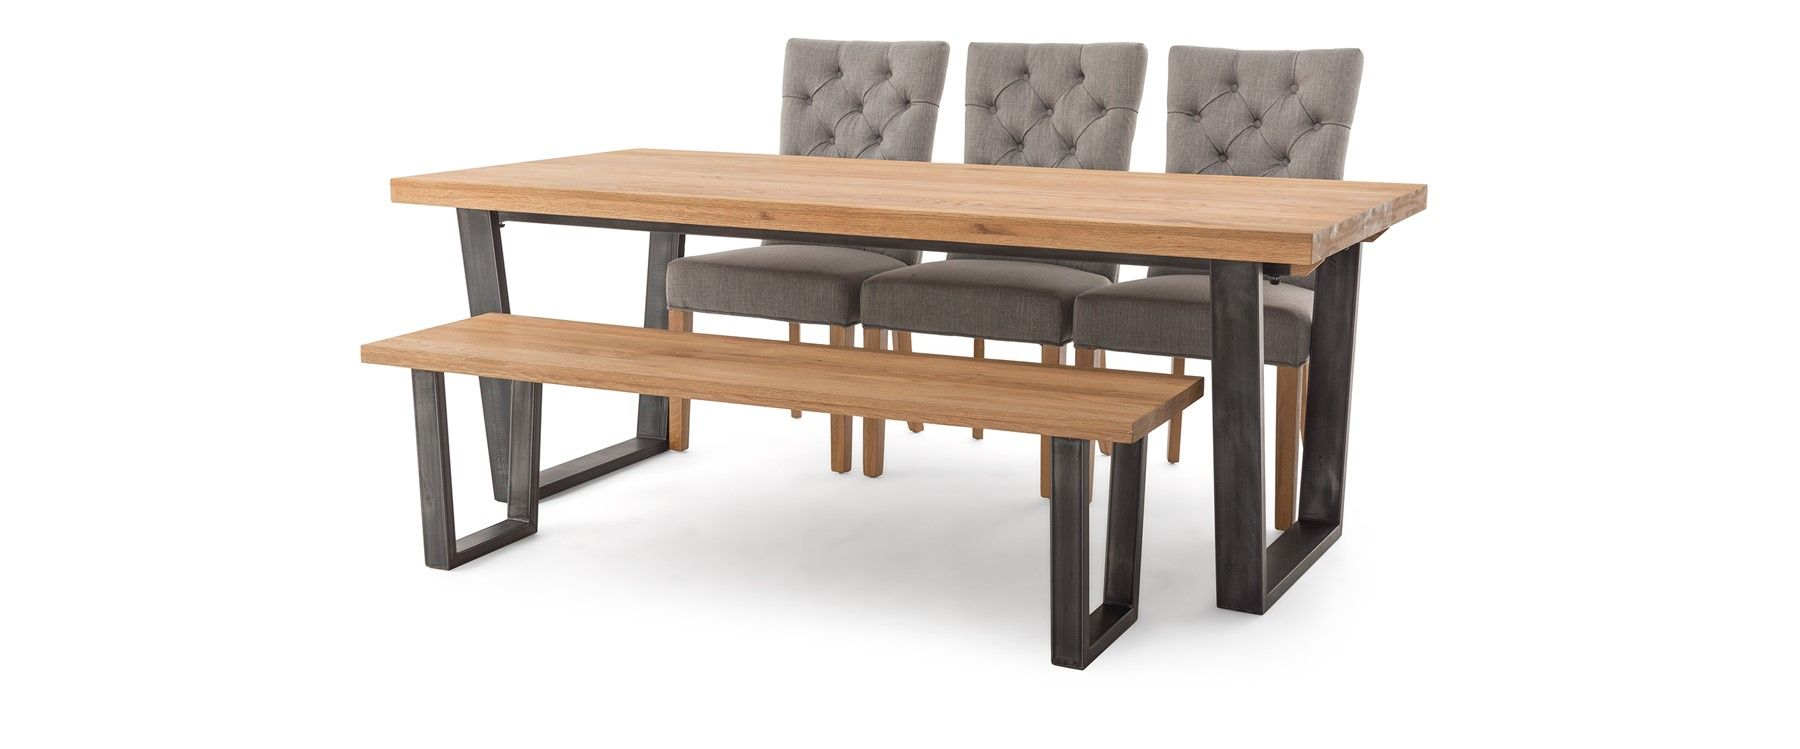 Calia Dining Table & 3 Marlow Chairs & Bench | EZ Living Furniture ...